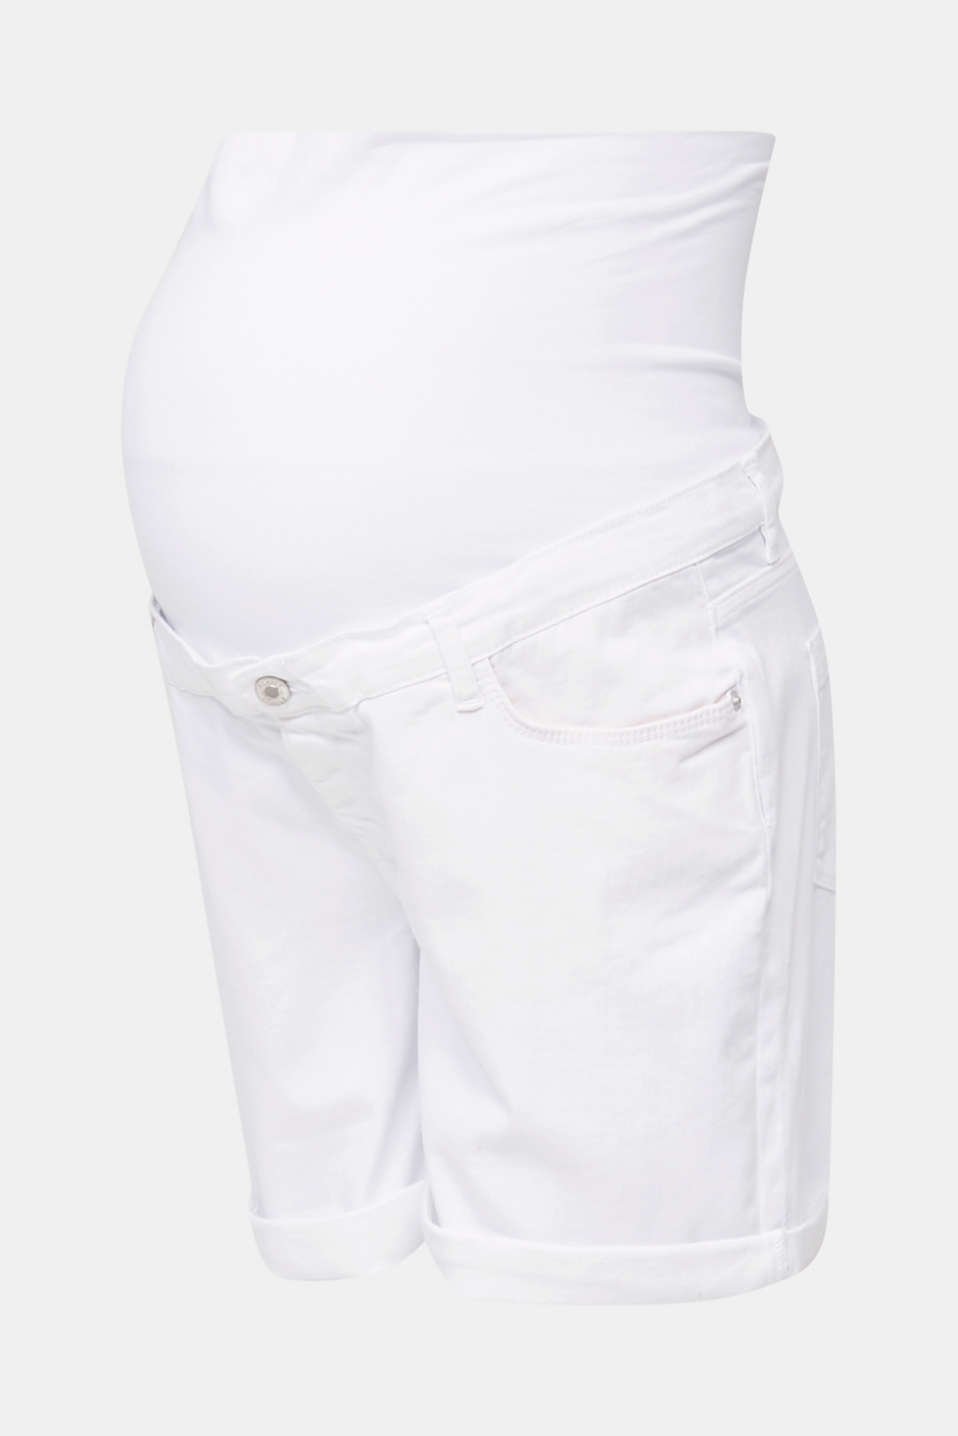 Denim shorts with an over-bump waistband, LCWHITE, detail image number 4